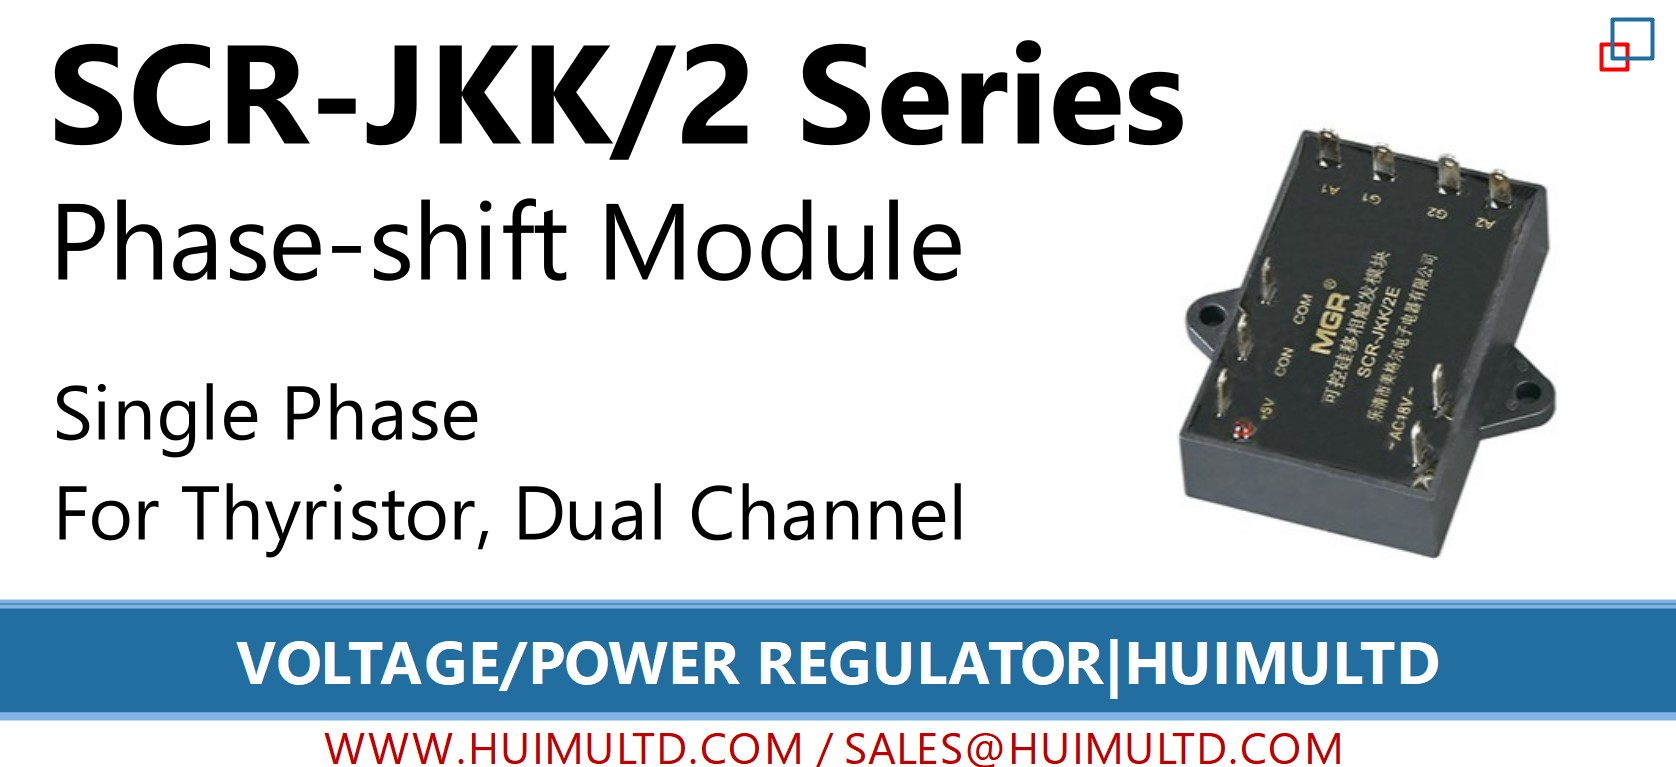 SCR-JKK/2 Series Voltage Power Regulator